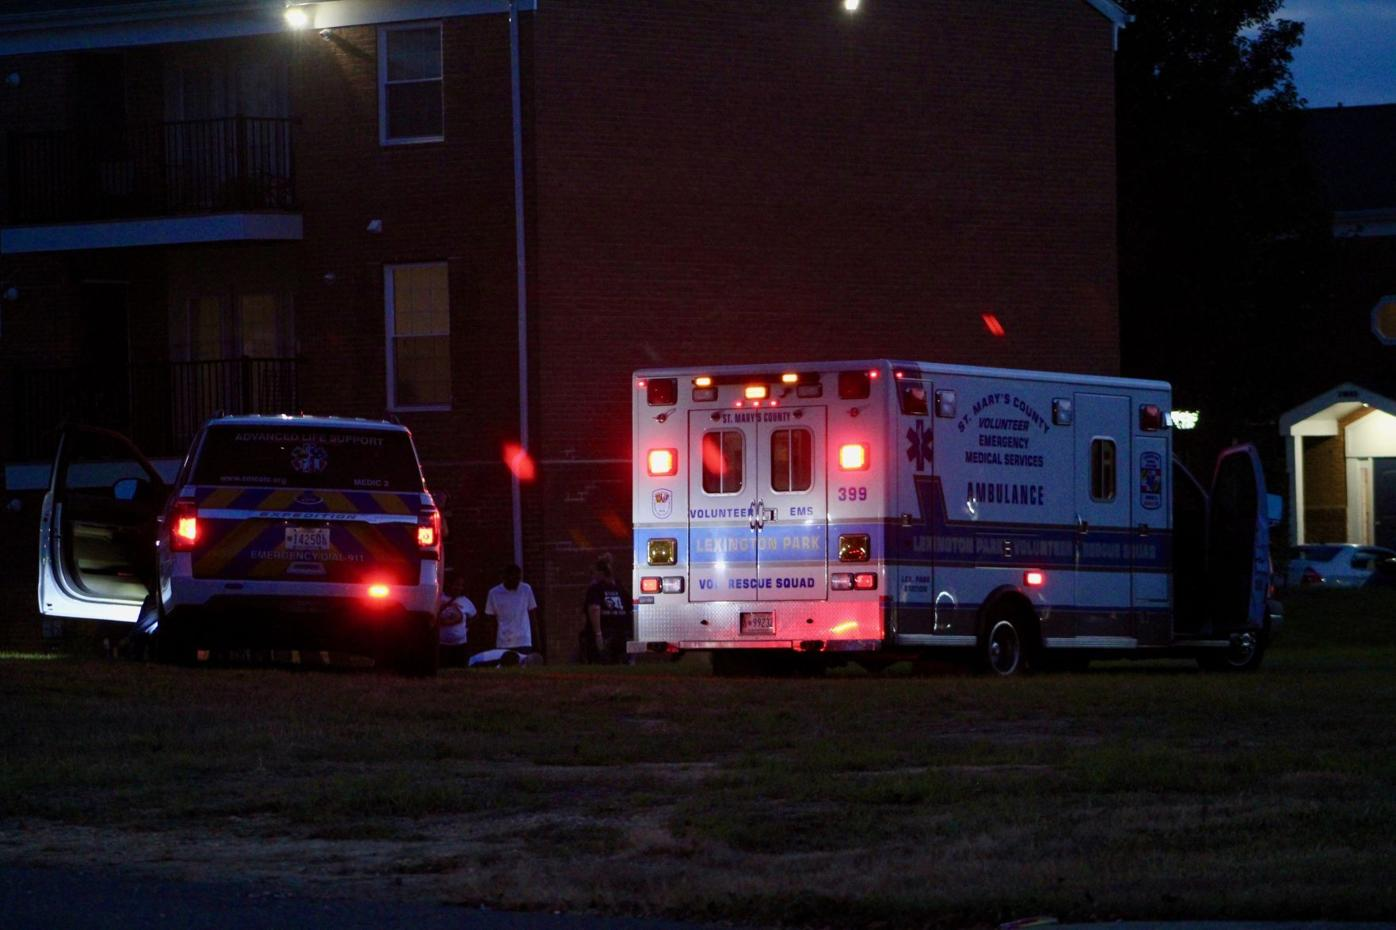 Emergency services respond to an overdose call in Lexington Park